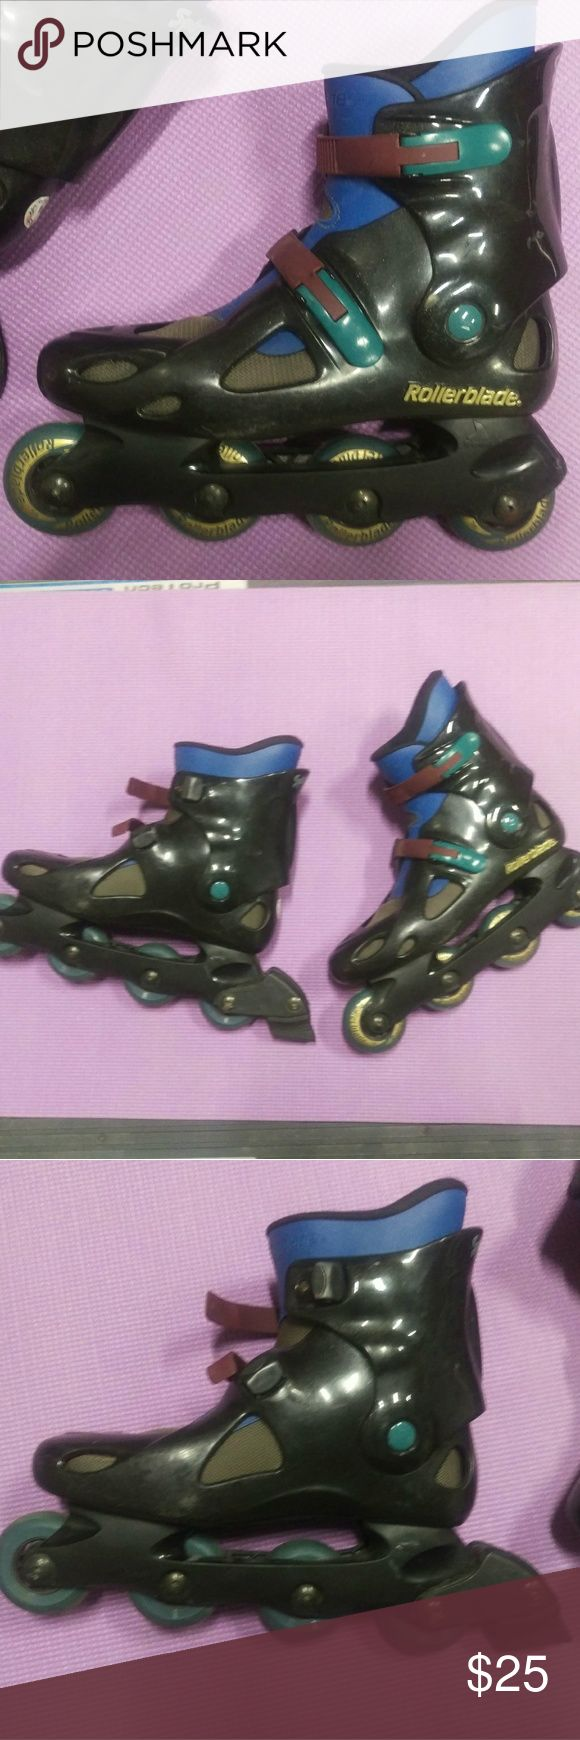 Rollerblade Spiritblade brand inline rollerblade's Rollerblade's in good used condition. Everything functions properly. Some scuffs, scratches and fading but over all great pair of blades. rollerblade Other